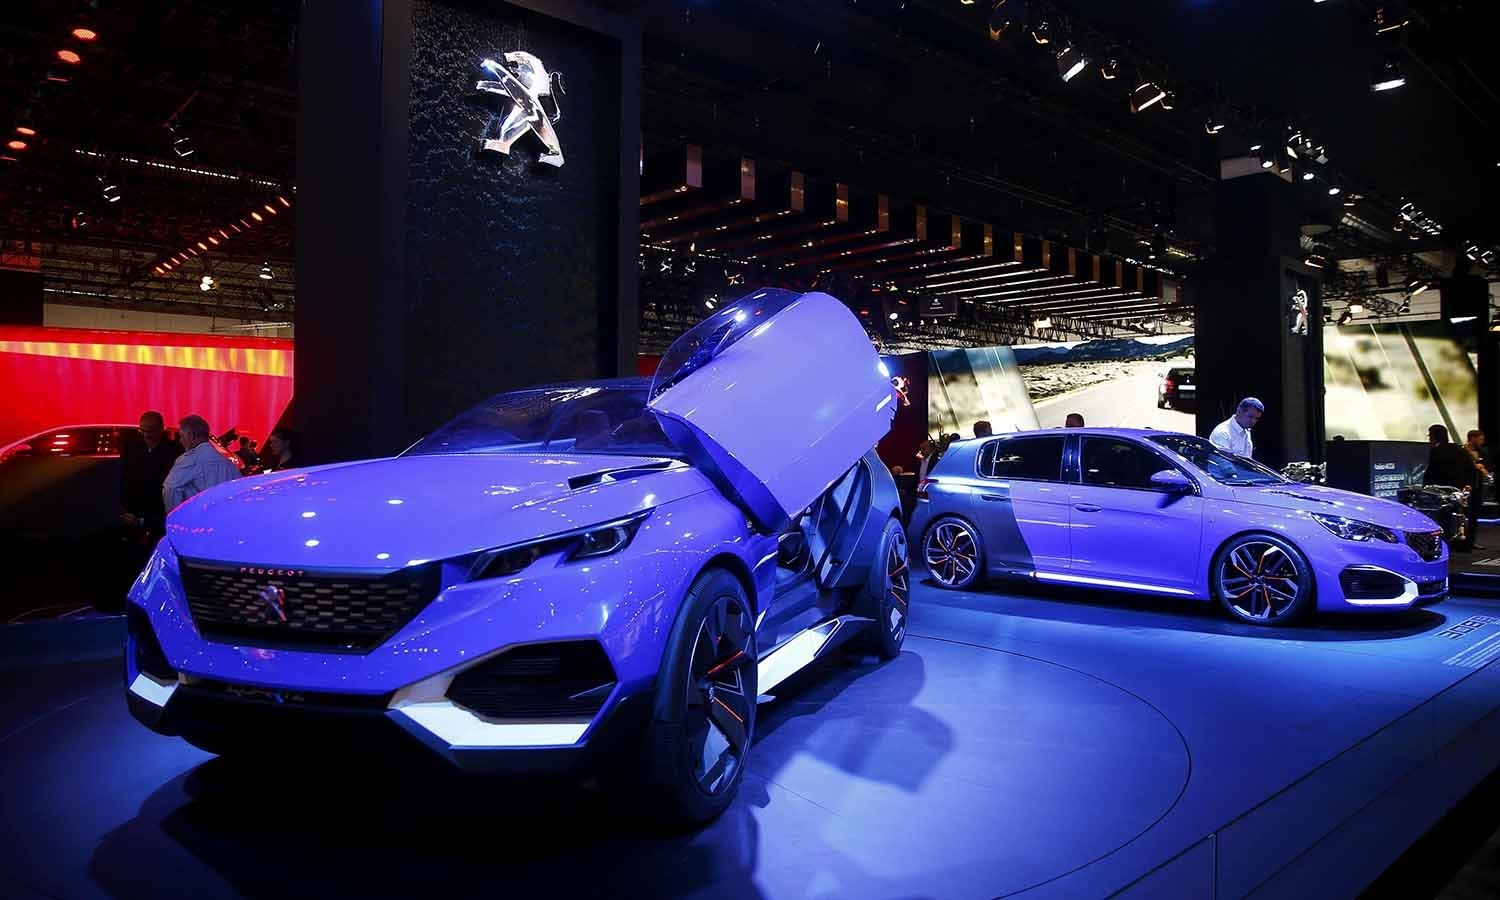 A Peugeot Quartz concept car is pictured during the media day. ─ Reuters